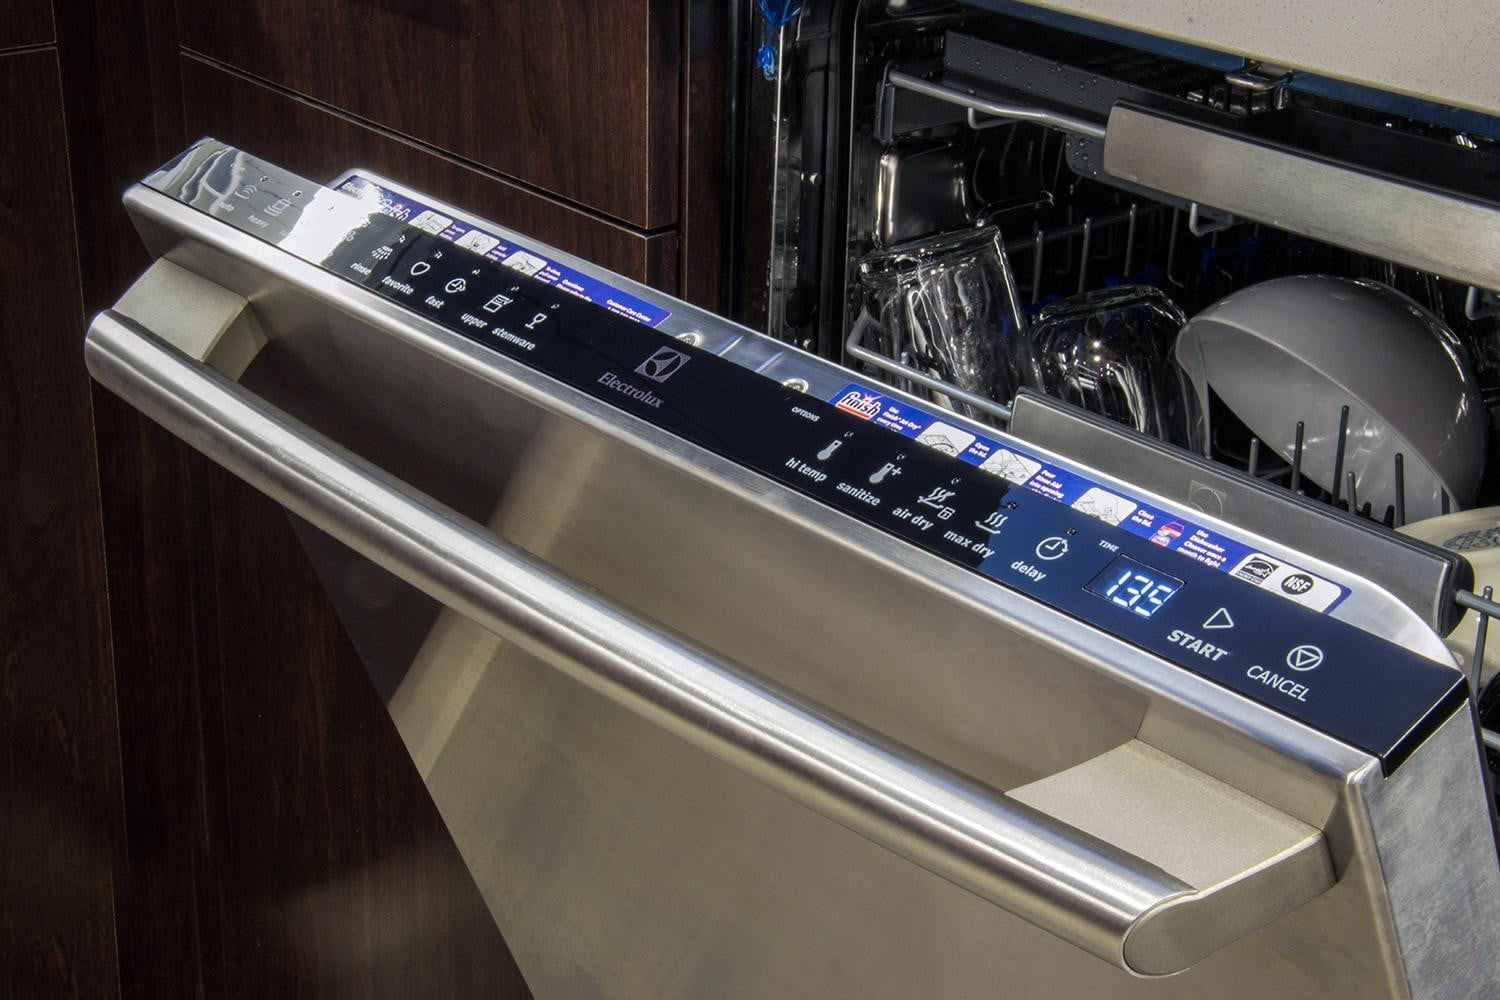 electrolux dishwasher how to use